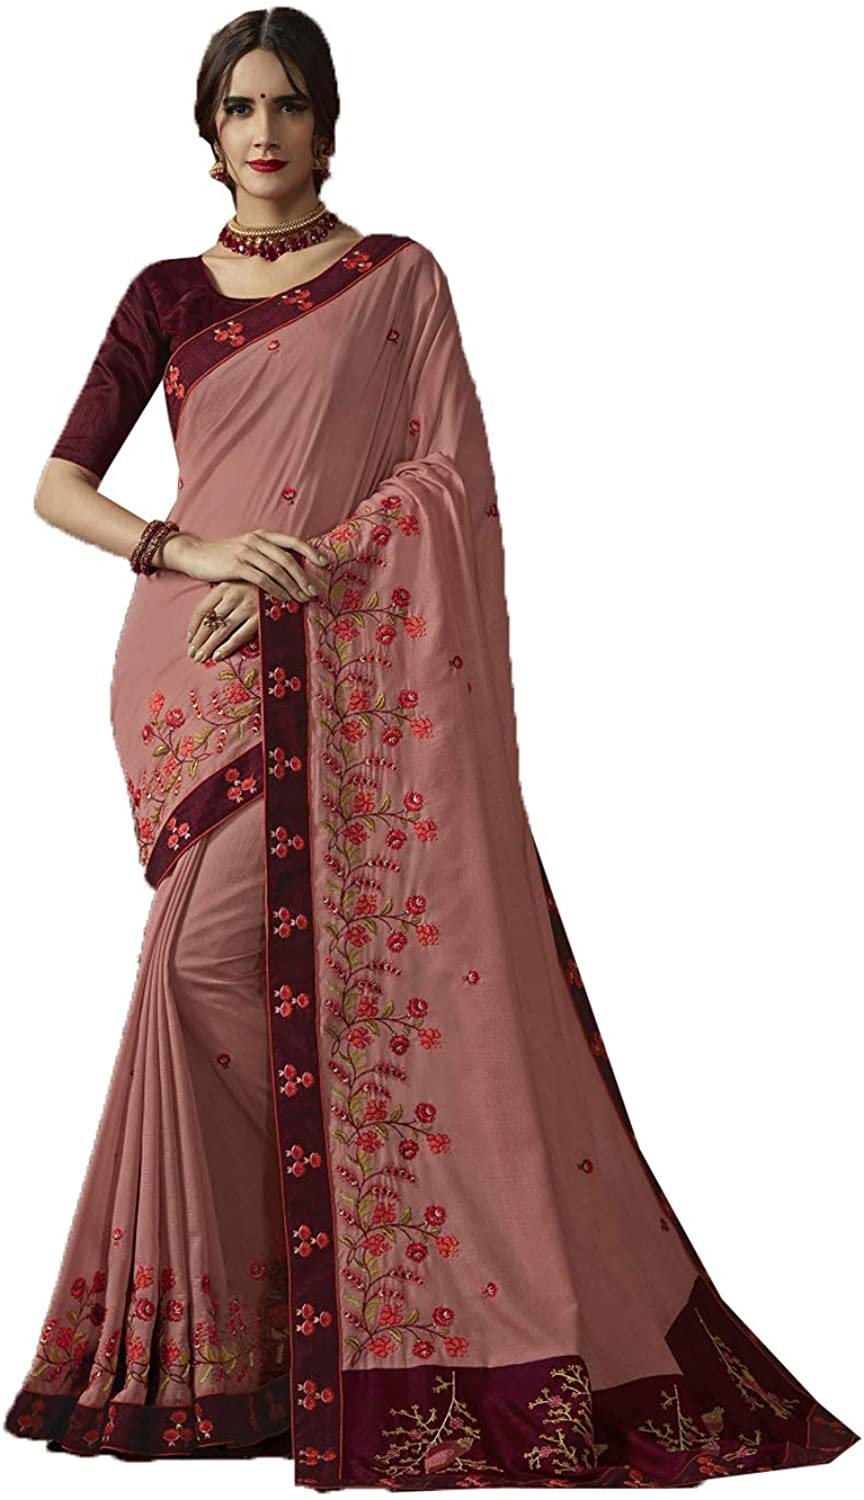 Saree for Women Bollywood Wedding Designer Peach Sari with Unstitched Blouse. ICW2593-7